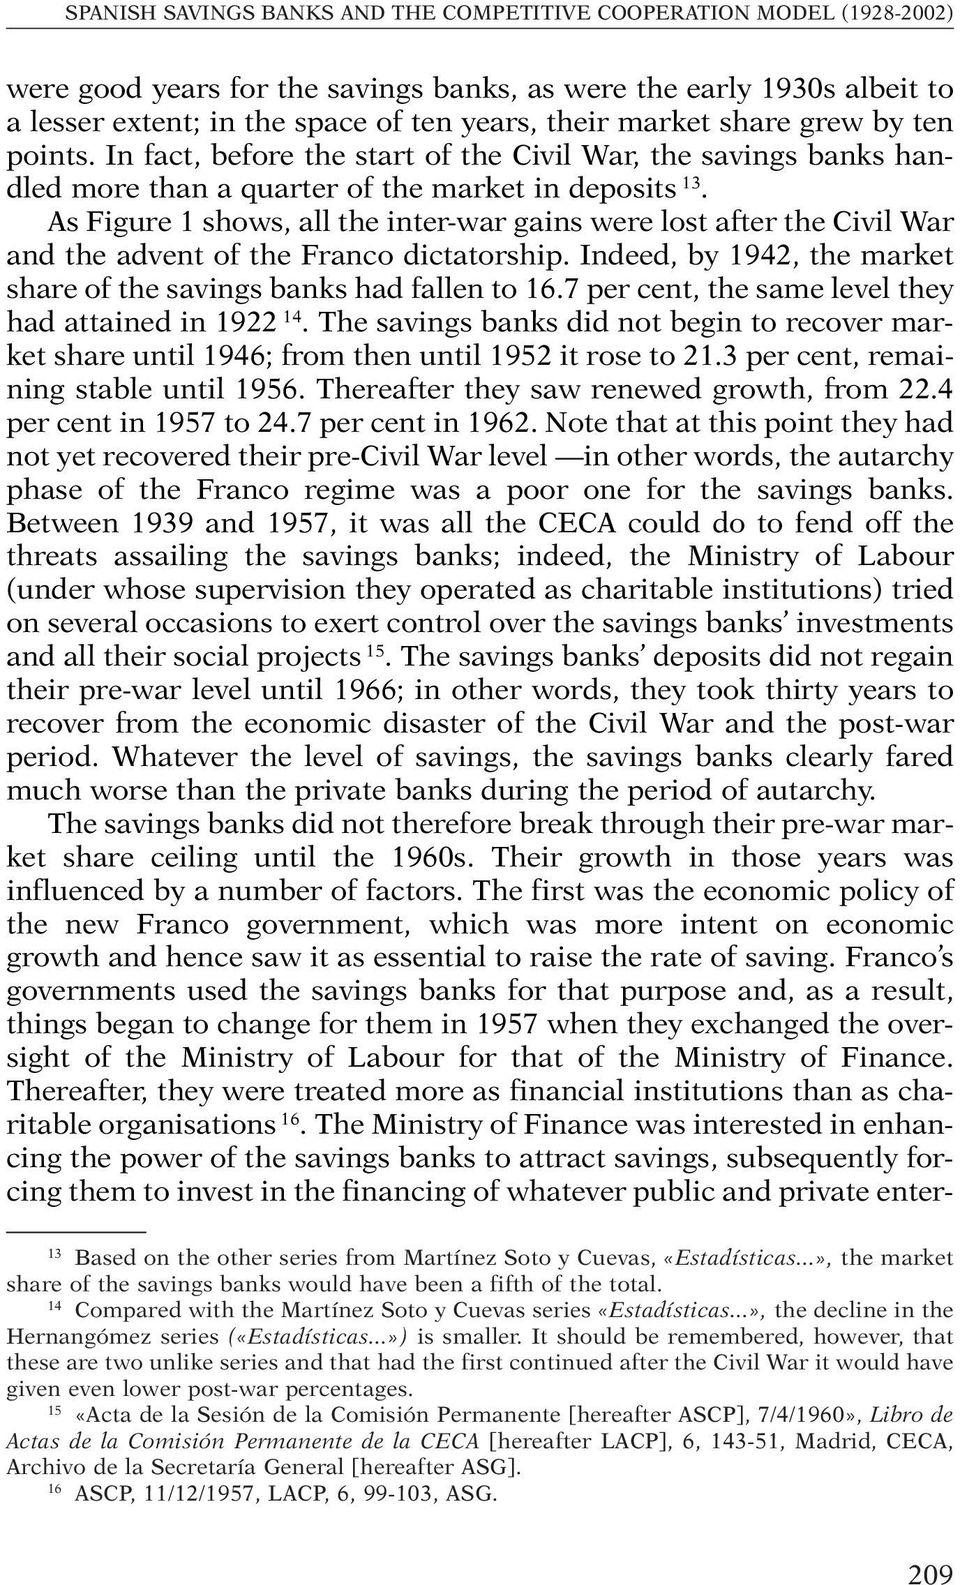 As Figure 1 shows, all the inter-war gains were lost after the Civil War and the advent of the Franco dictatorship. Indeed, by 1942, the market share of the savings banks had fallen to 16.